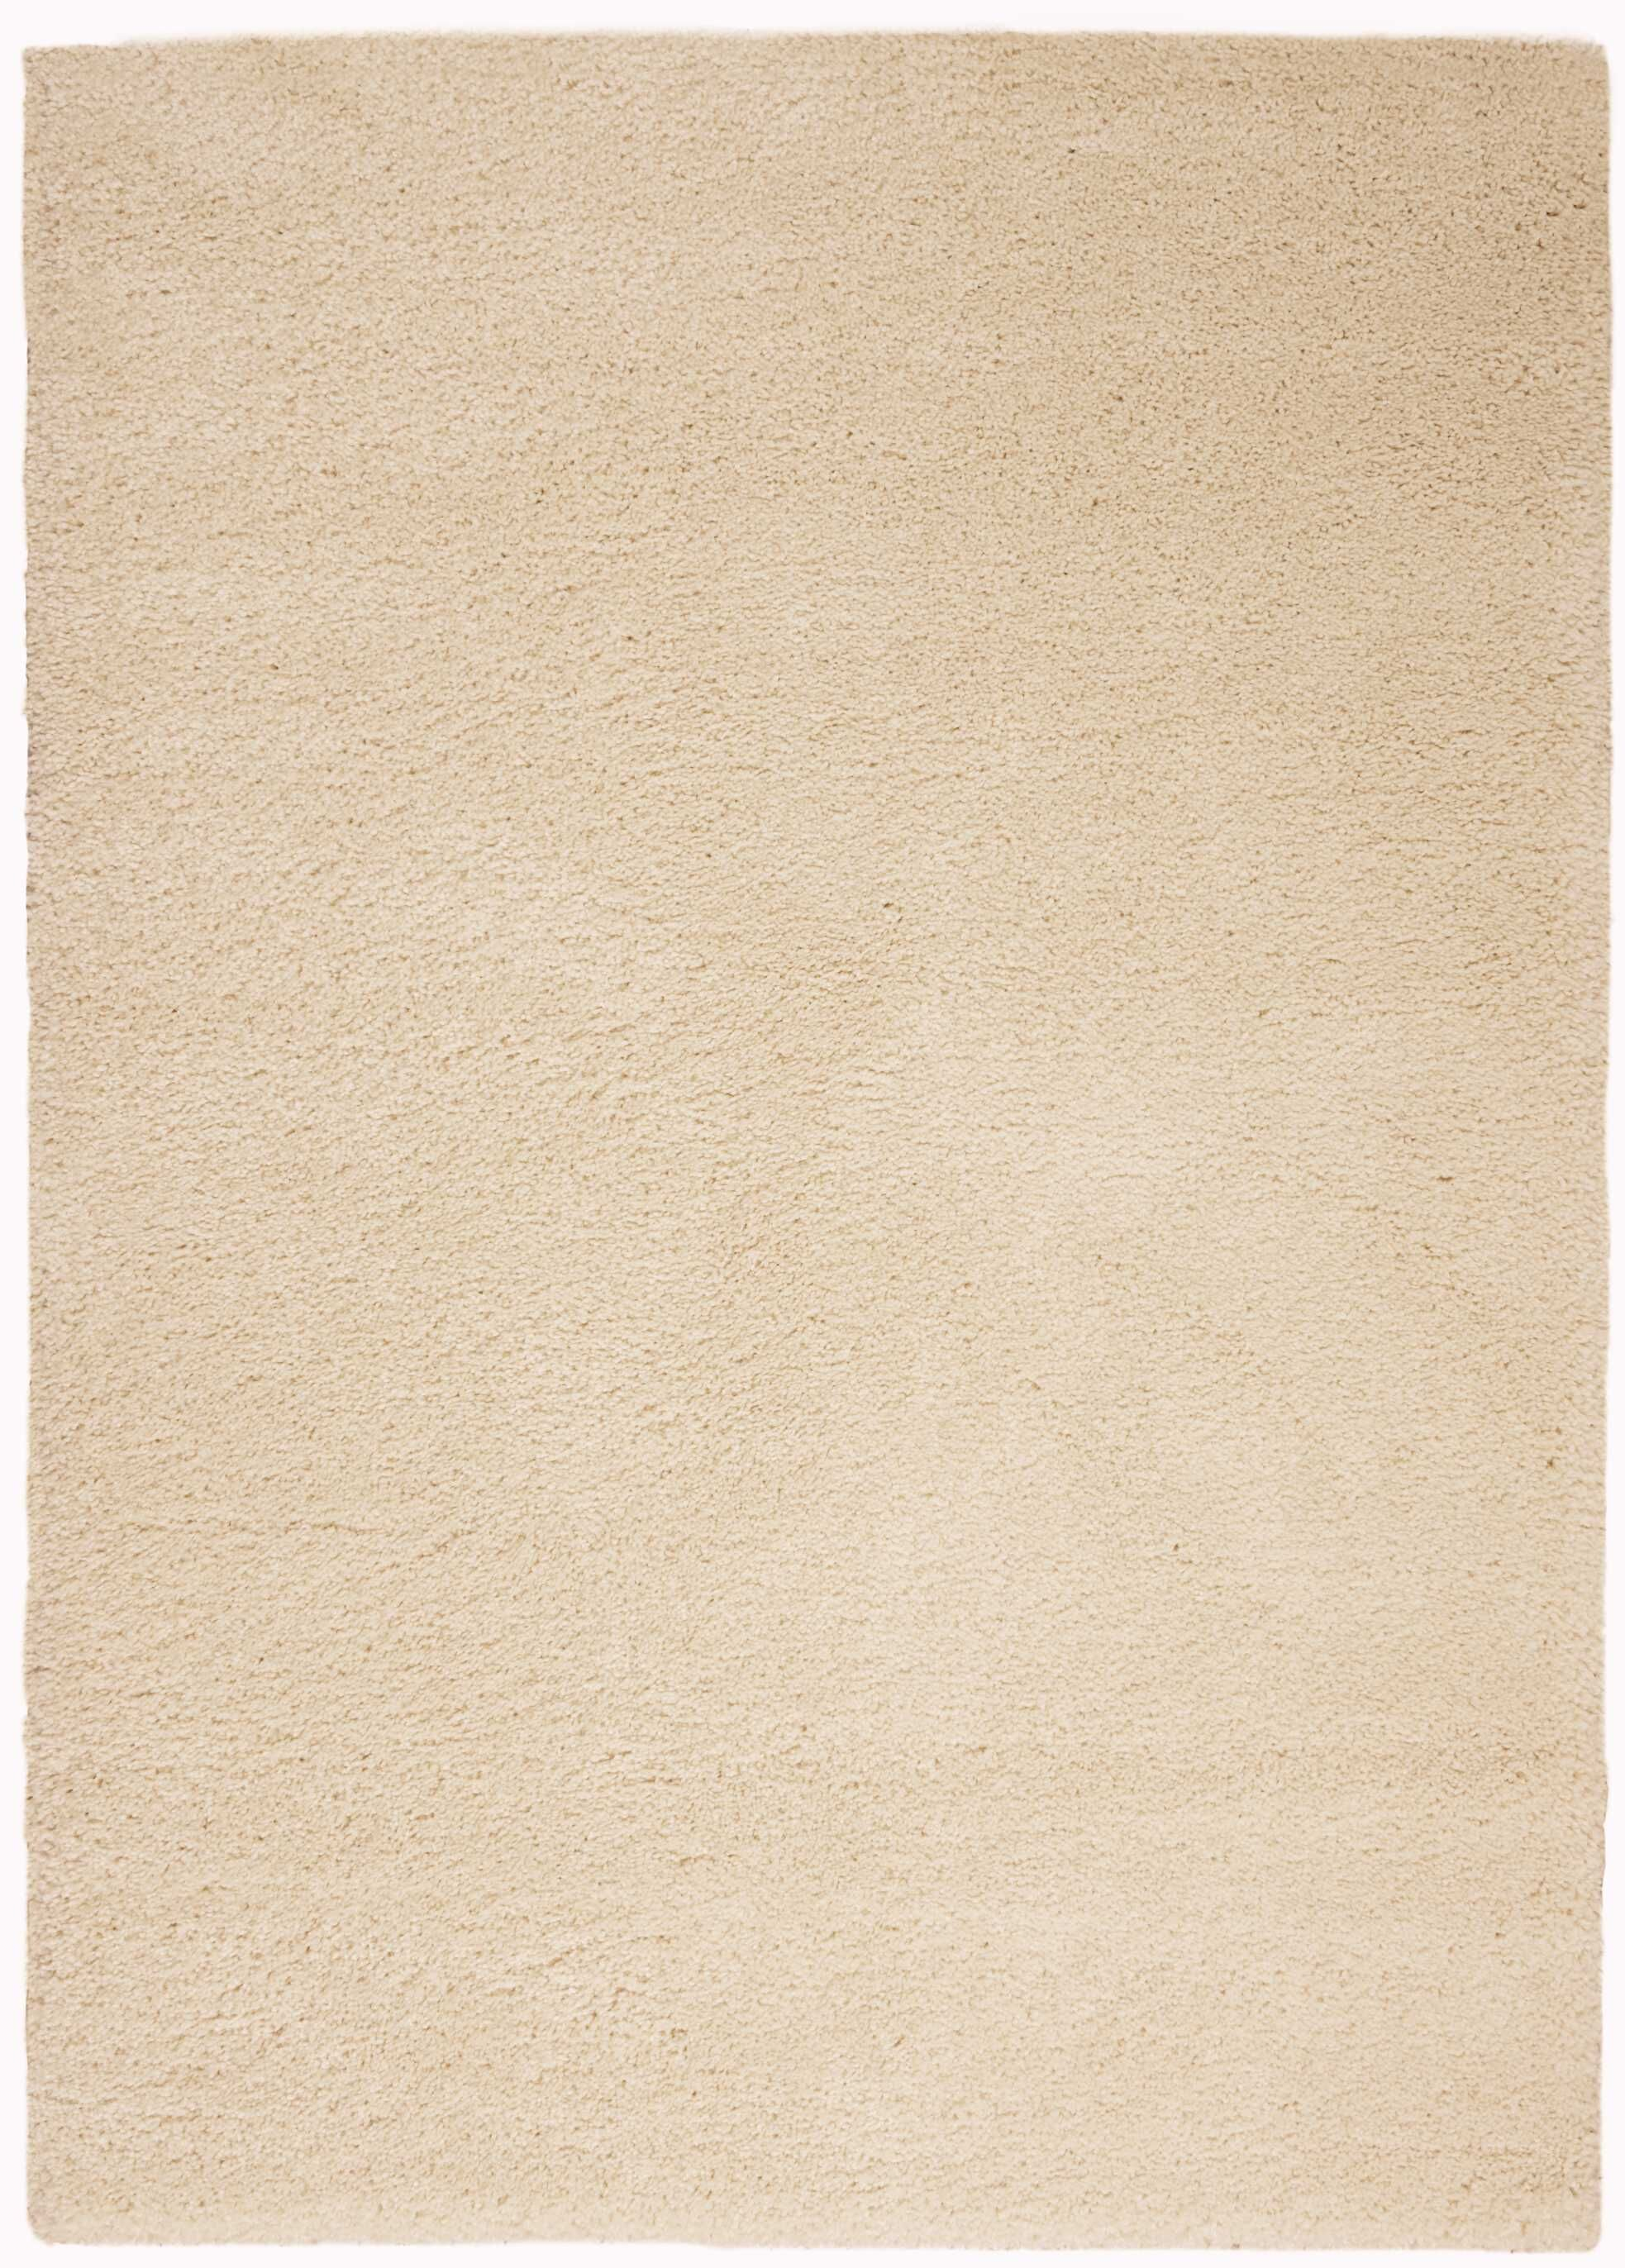 Parrish Cream Area Rug Rug Size: Rectangle 9'10